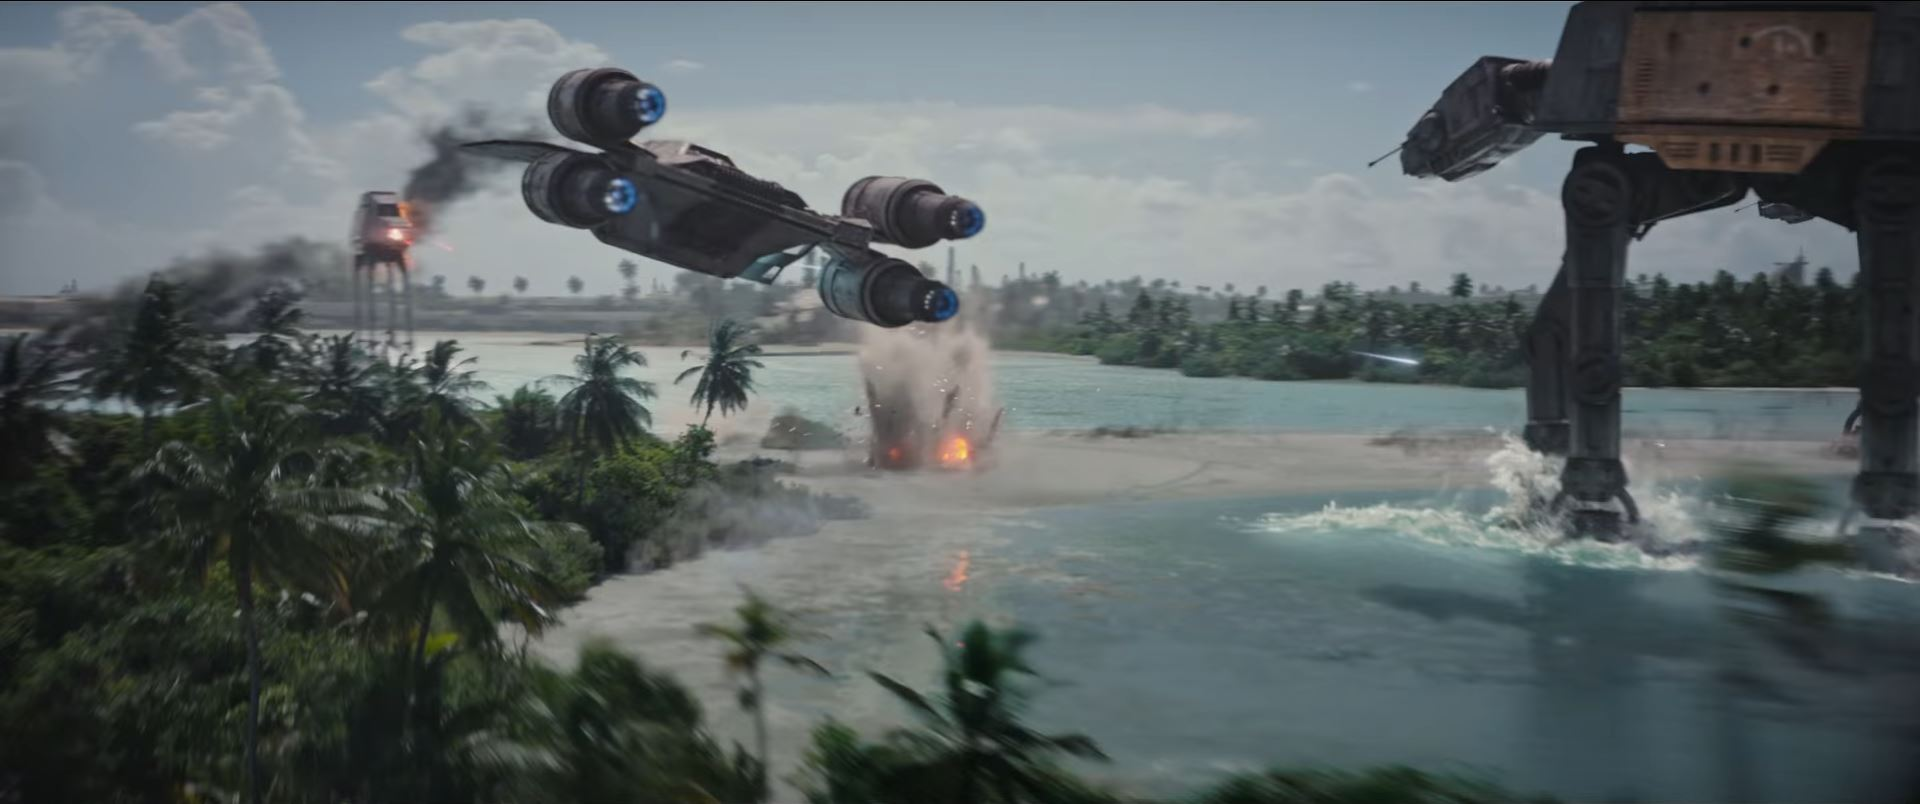 rogue one scarif motivi film guerra star wars